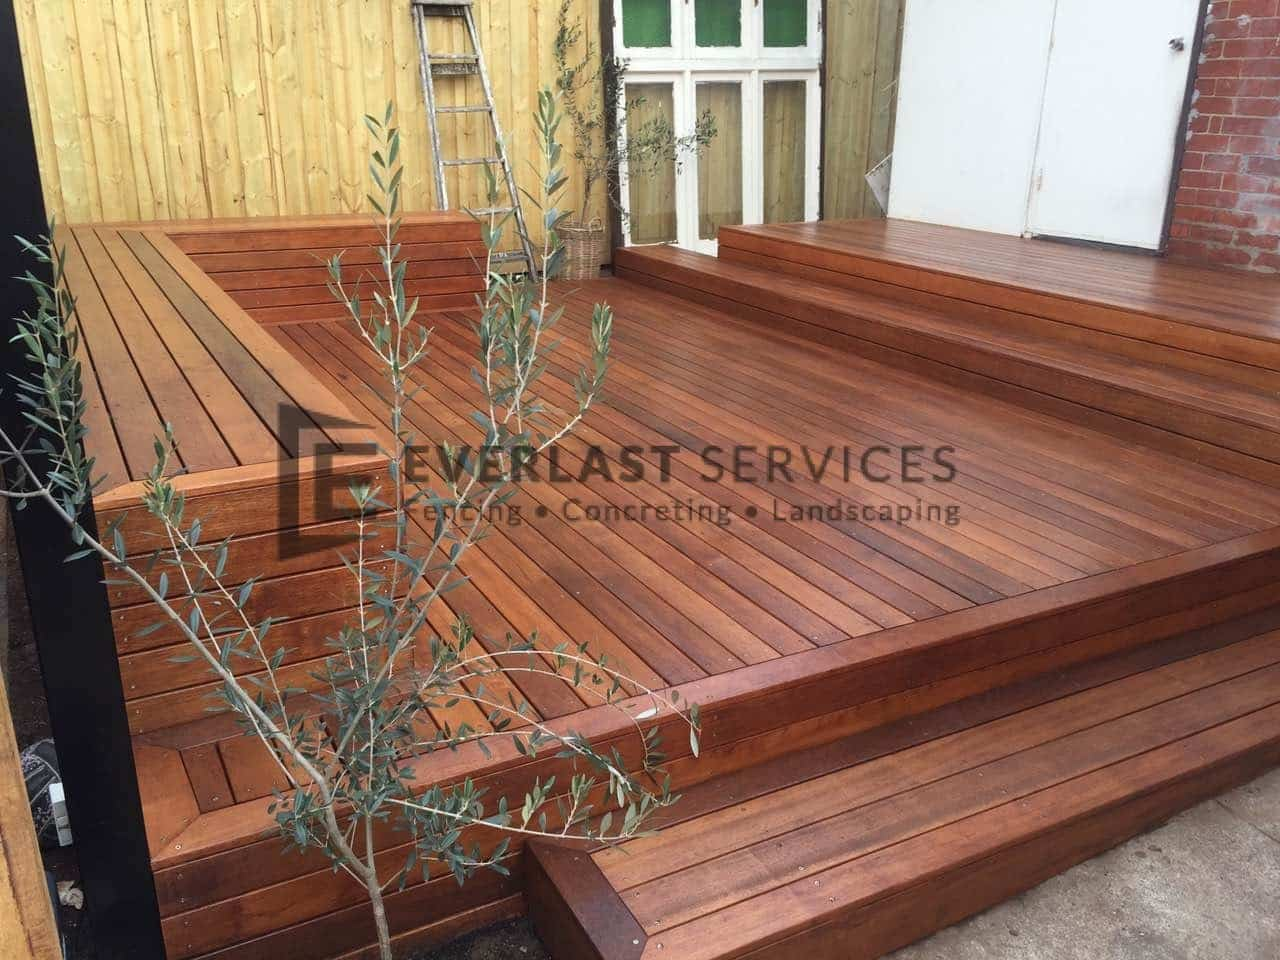 T53 - Merbau Decking with Bench Seats